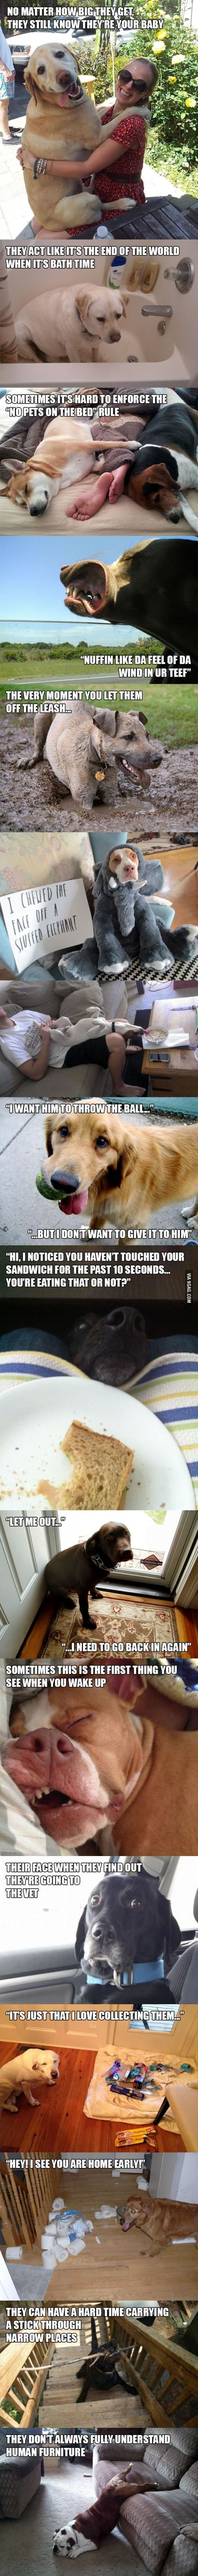 Hilarious Struggles Only Dog Owners Will Understand: